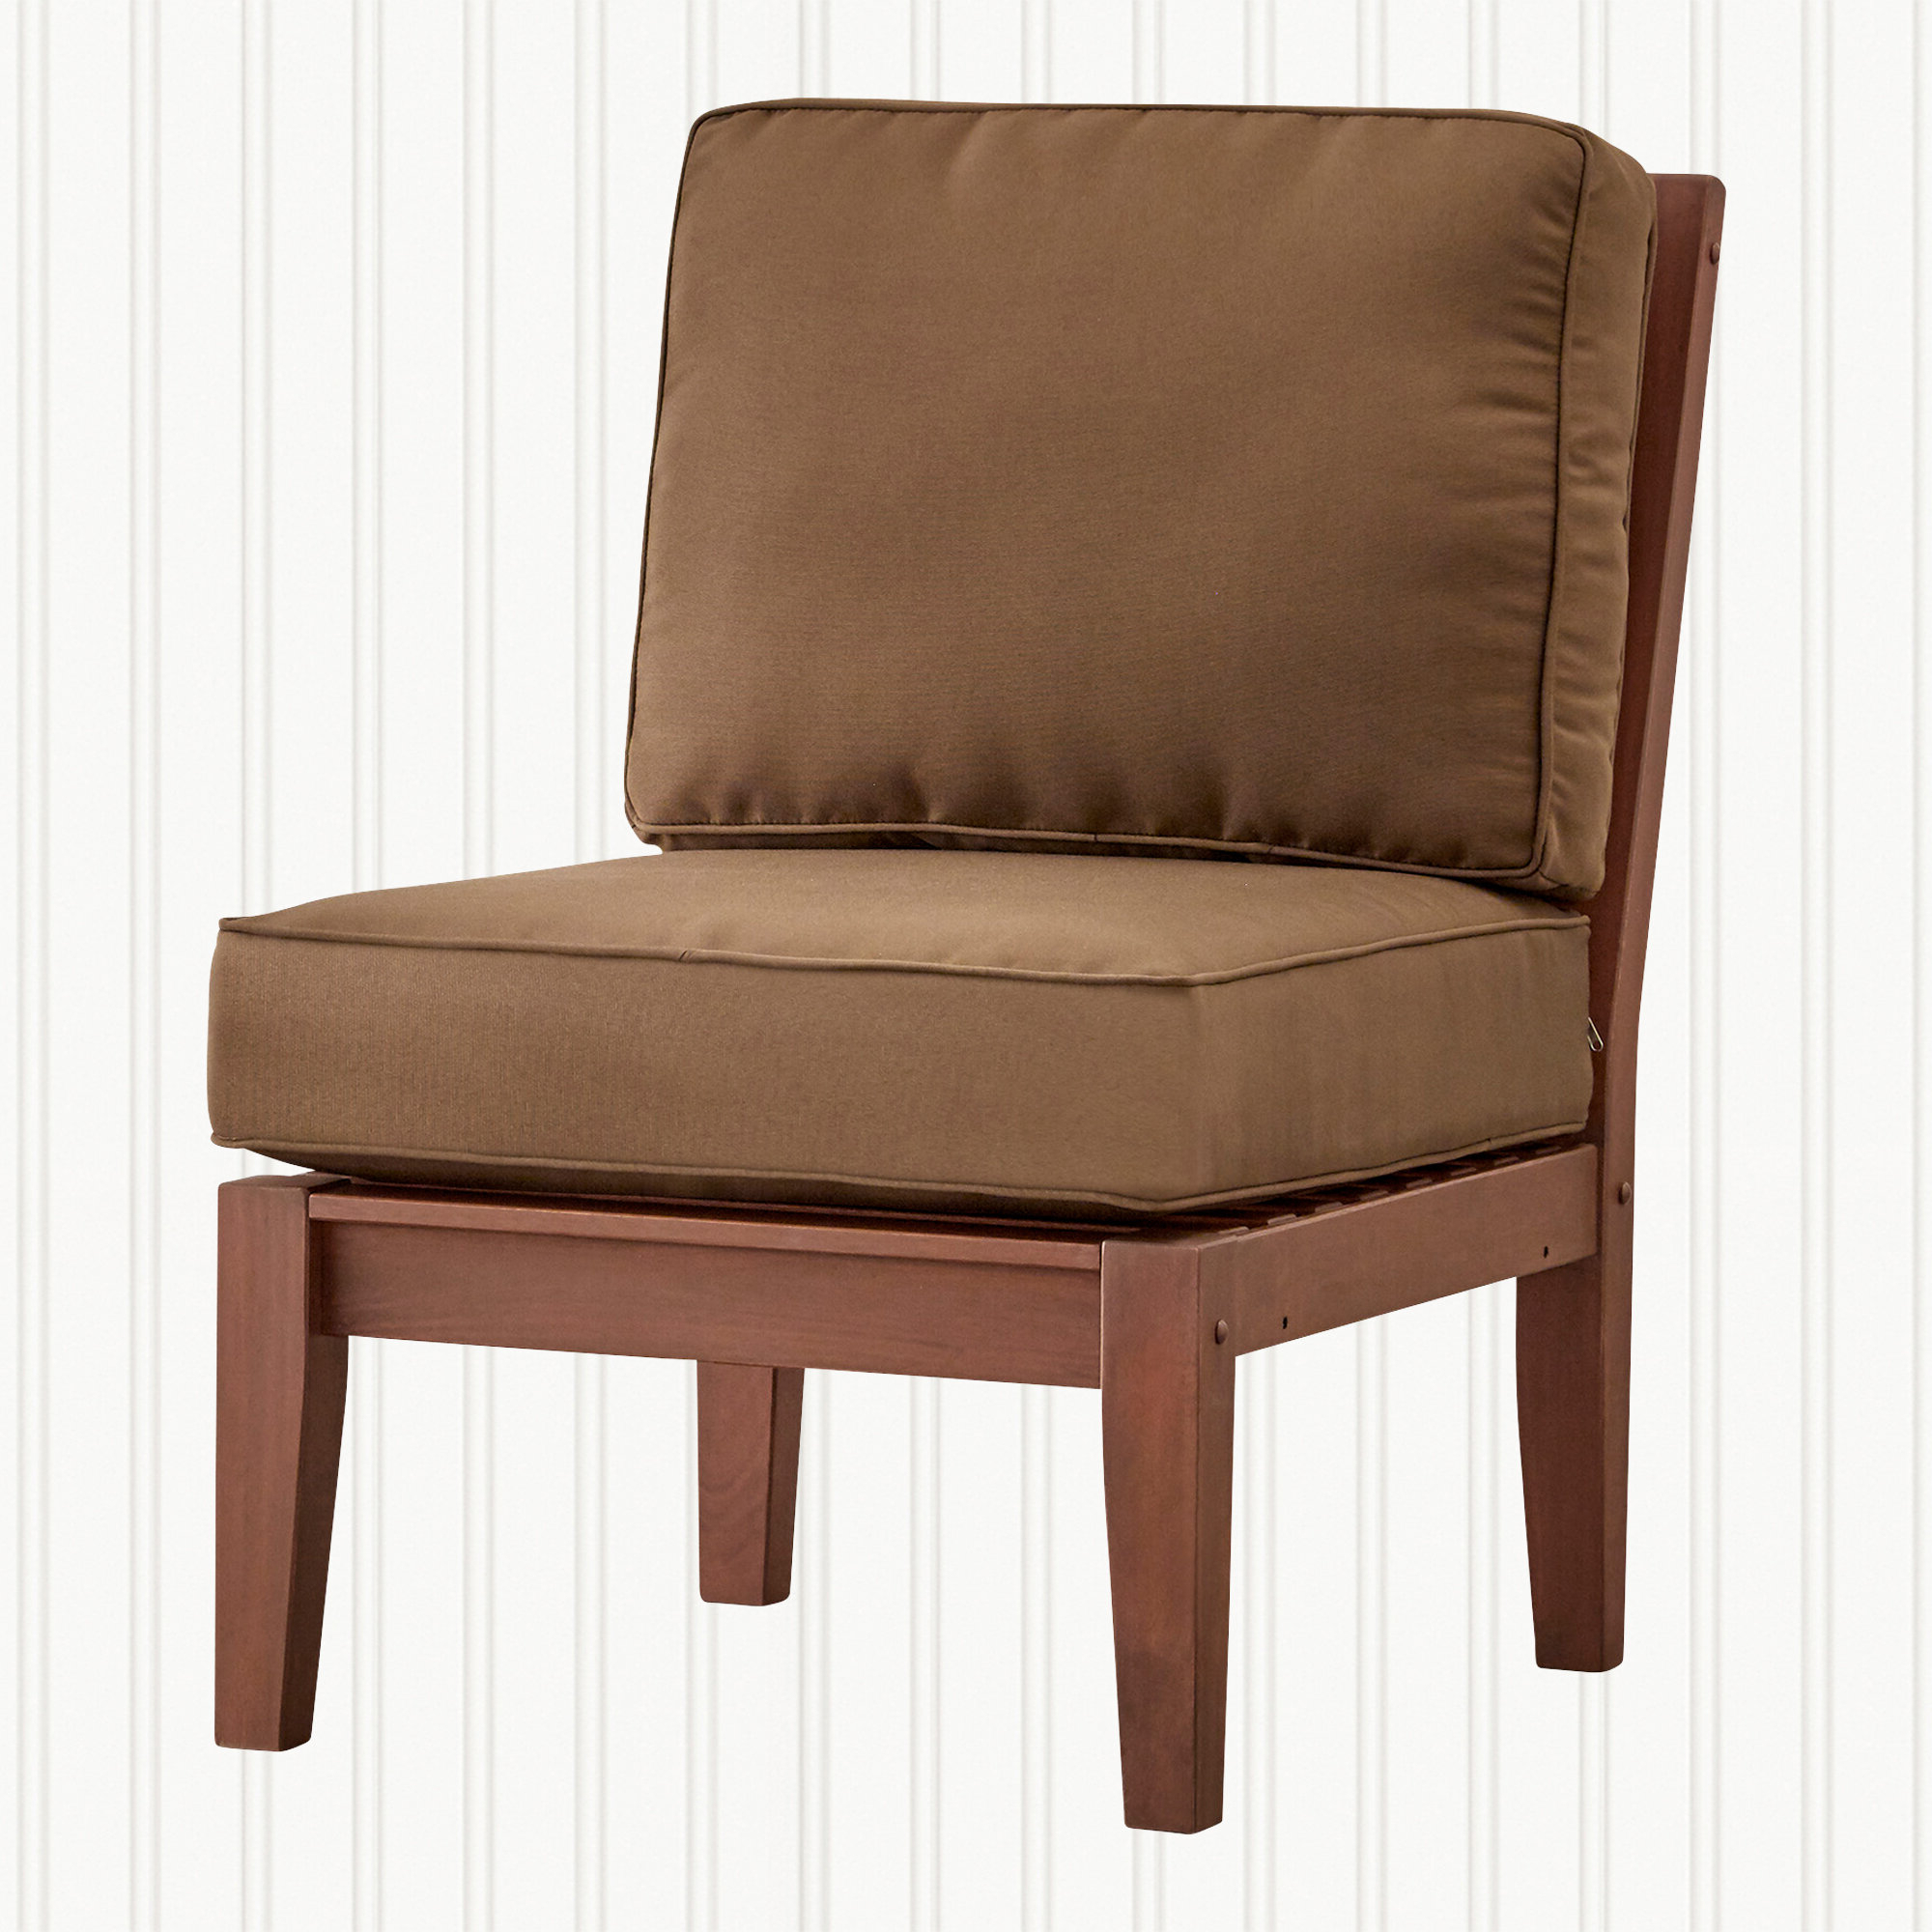 Hursey Armless Chair With Regard To Most Current Hursey Patio Sectionals (Gallery 18 of 20)